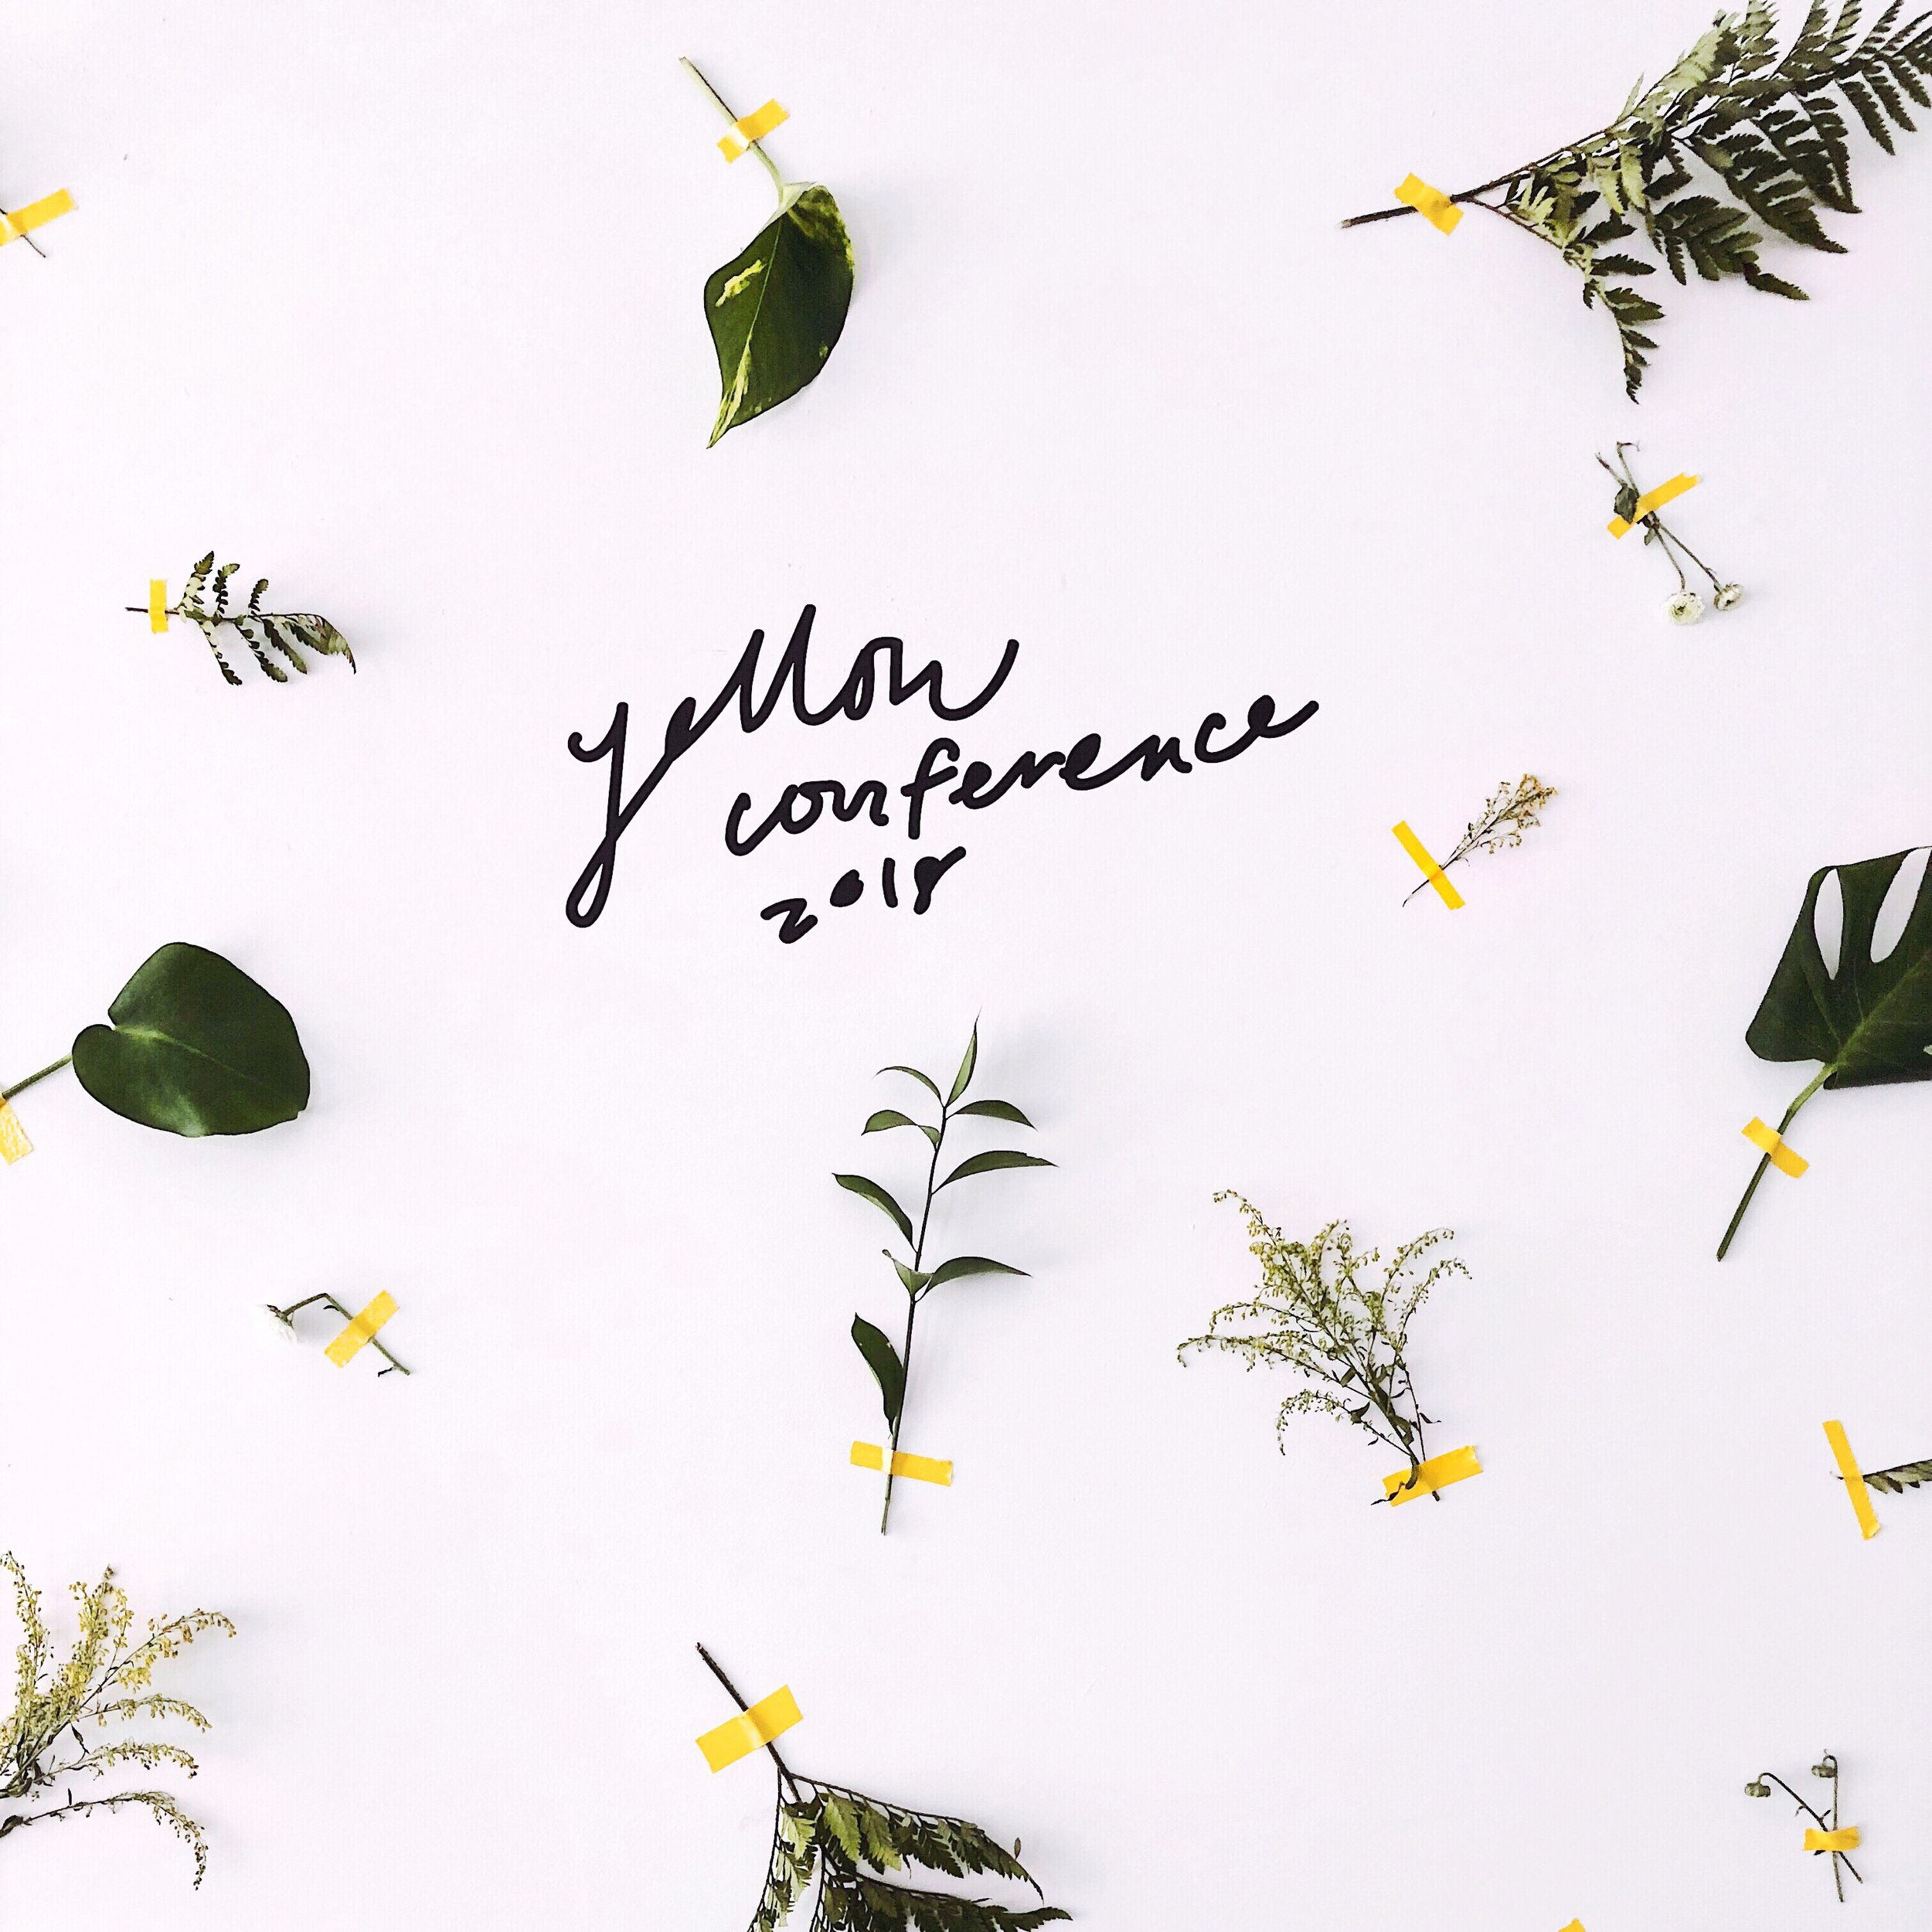 yellow conference 2018